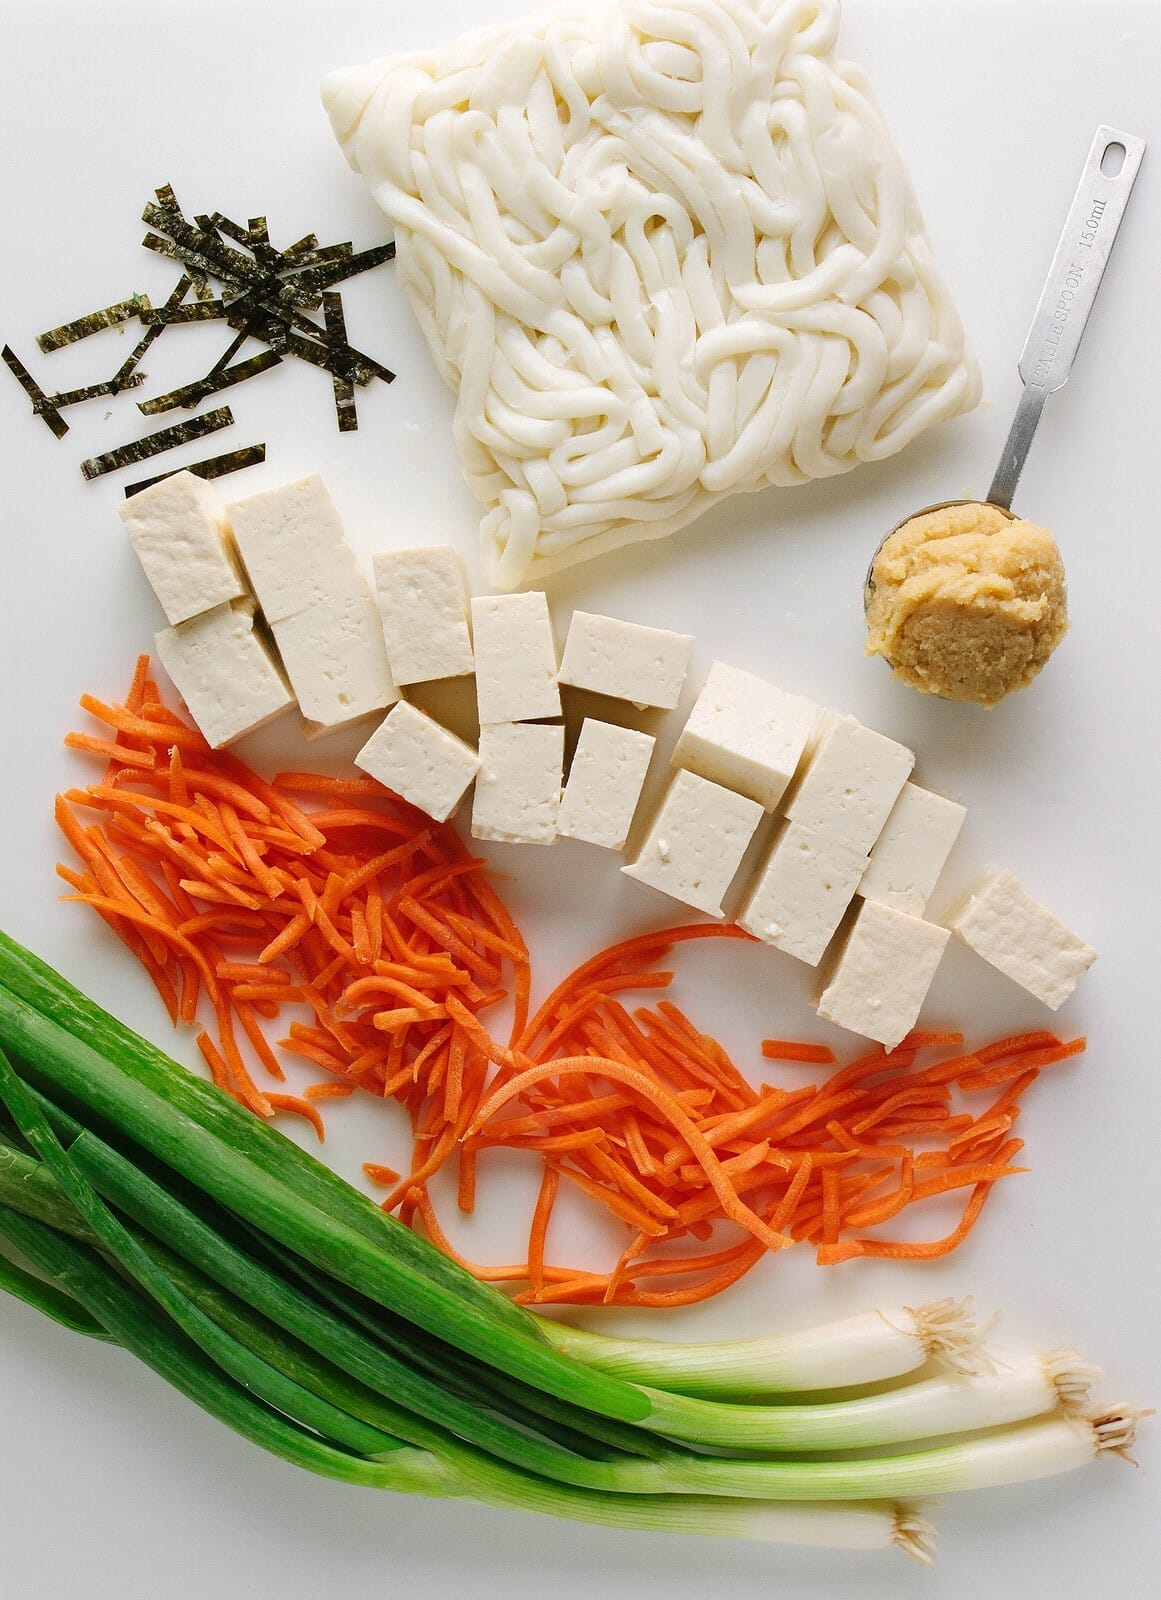 top down view of ingredients used to make healthy vegan miso soup with noodles.